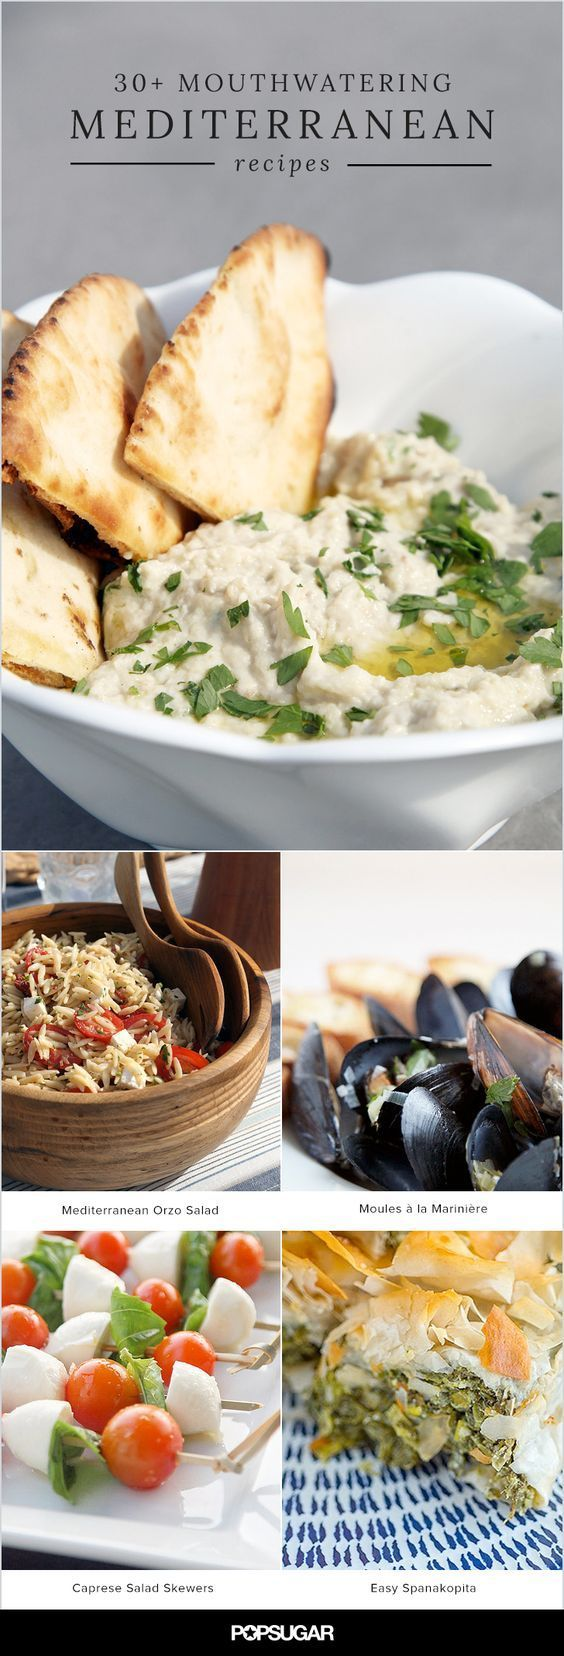 The health benefits of the Mediterranean diet are obvious, and the fact that the dishes taste so delicious is a major bonus. Reap the benefits at home with these recipes that celebrate Mediterranean favorites like olive oil, beans and fish. More Olives Oil, Olive Oils